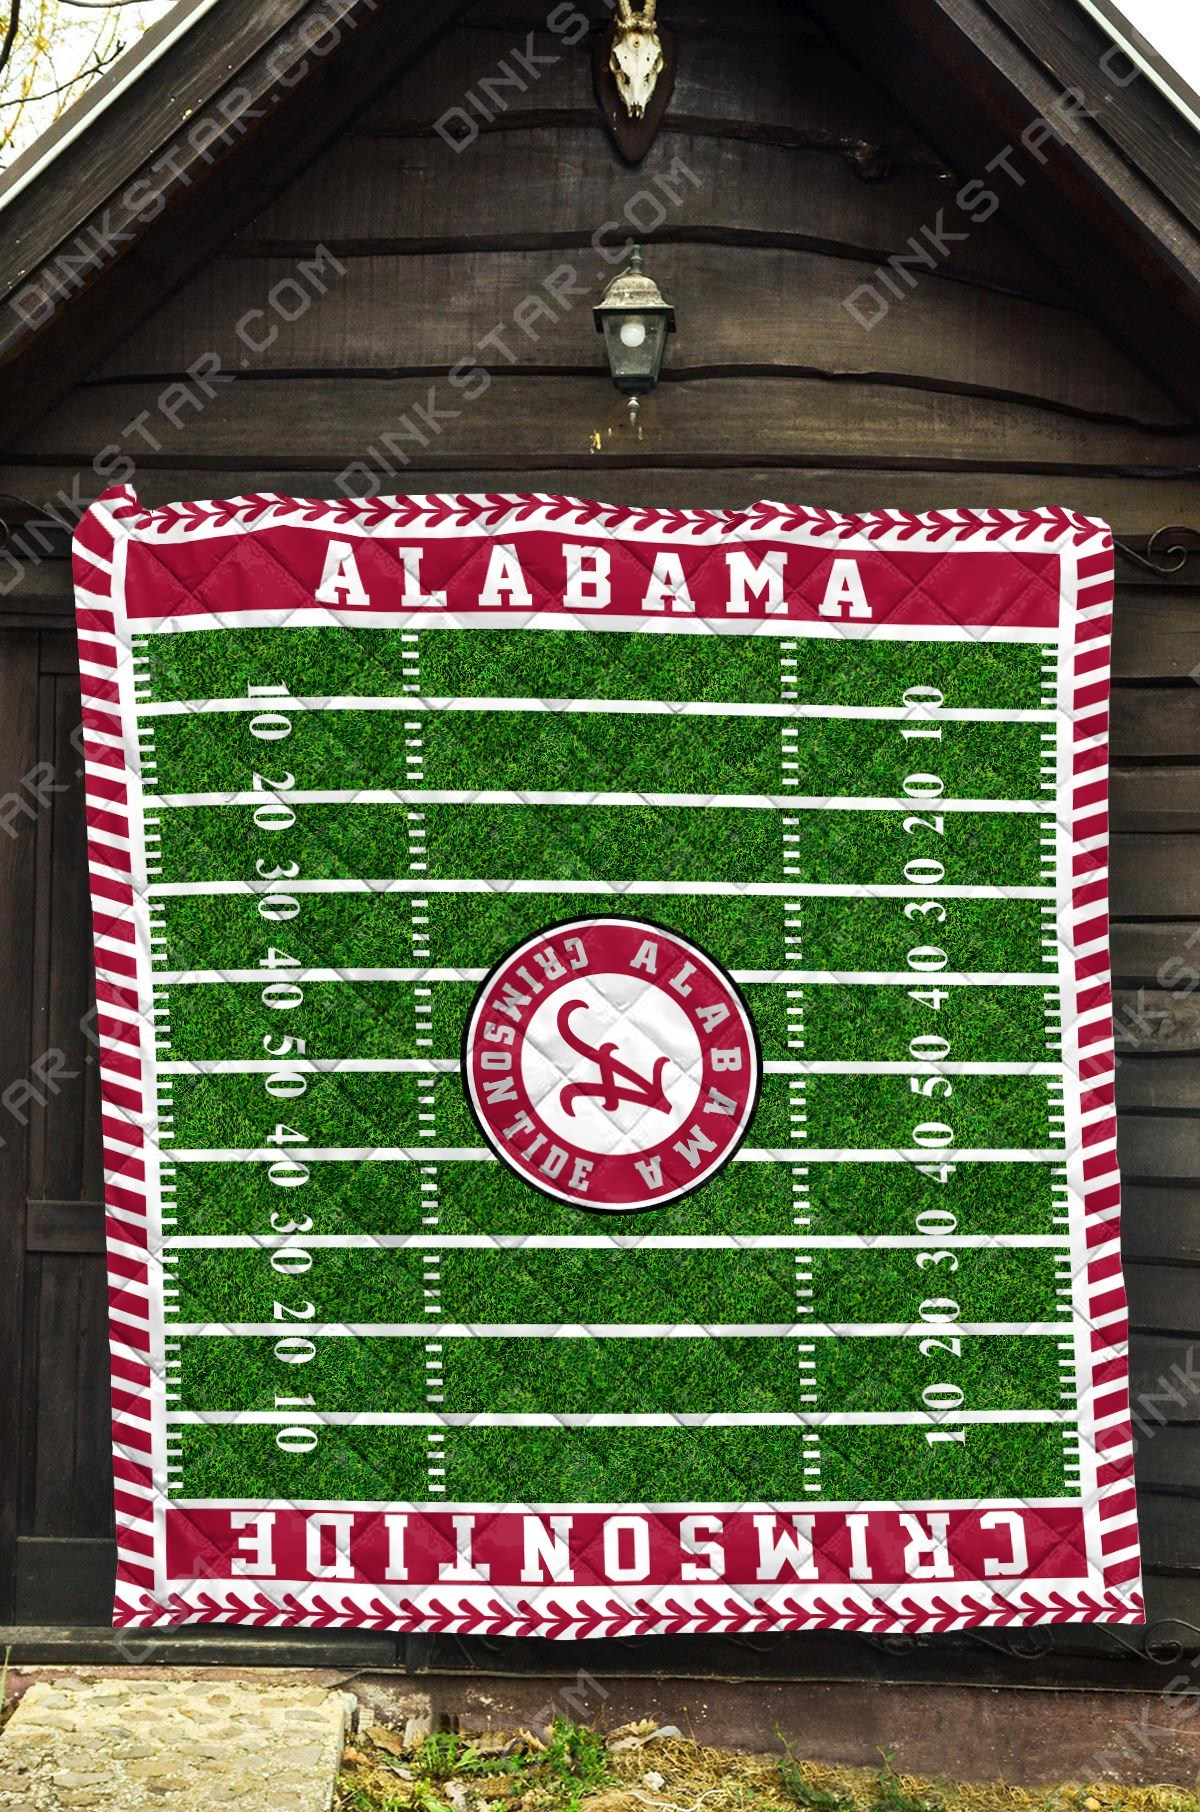 Alabama crimson tide football quilt 2